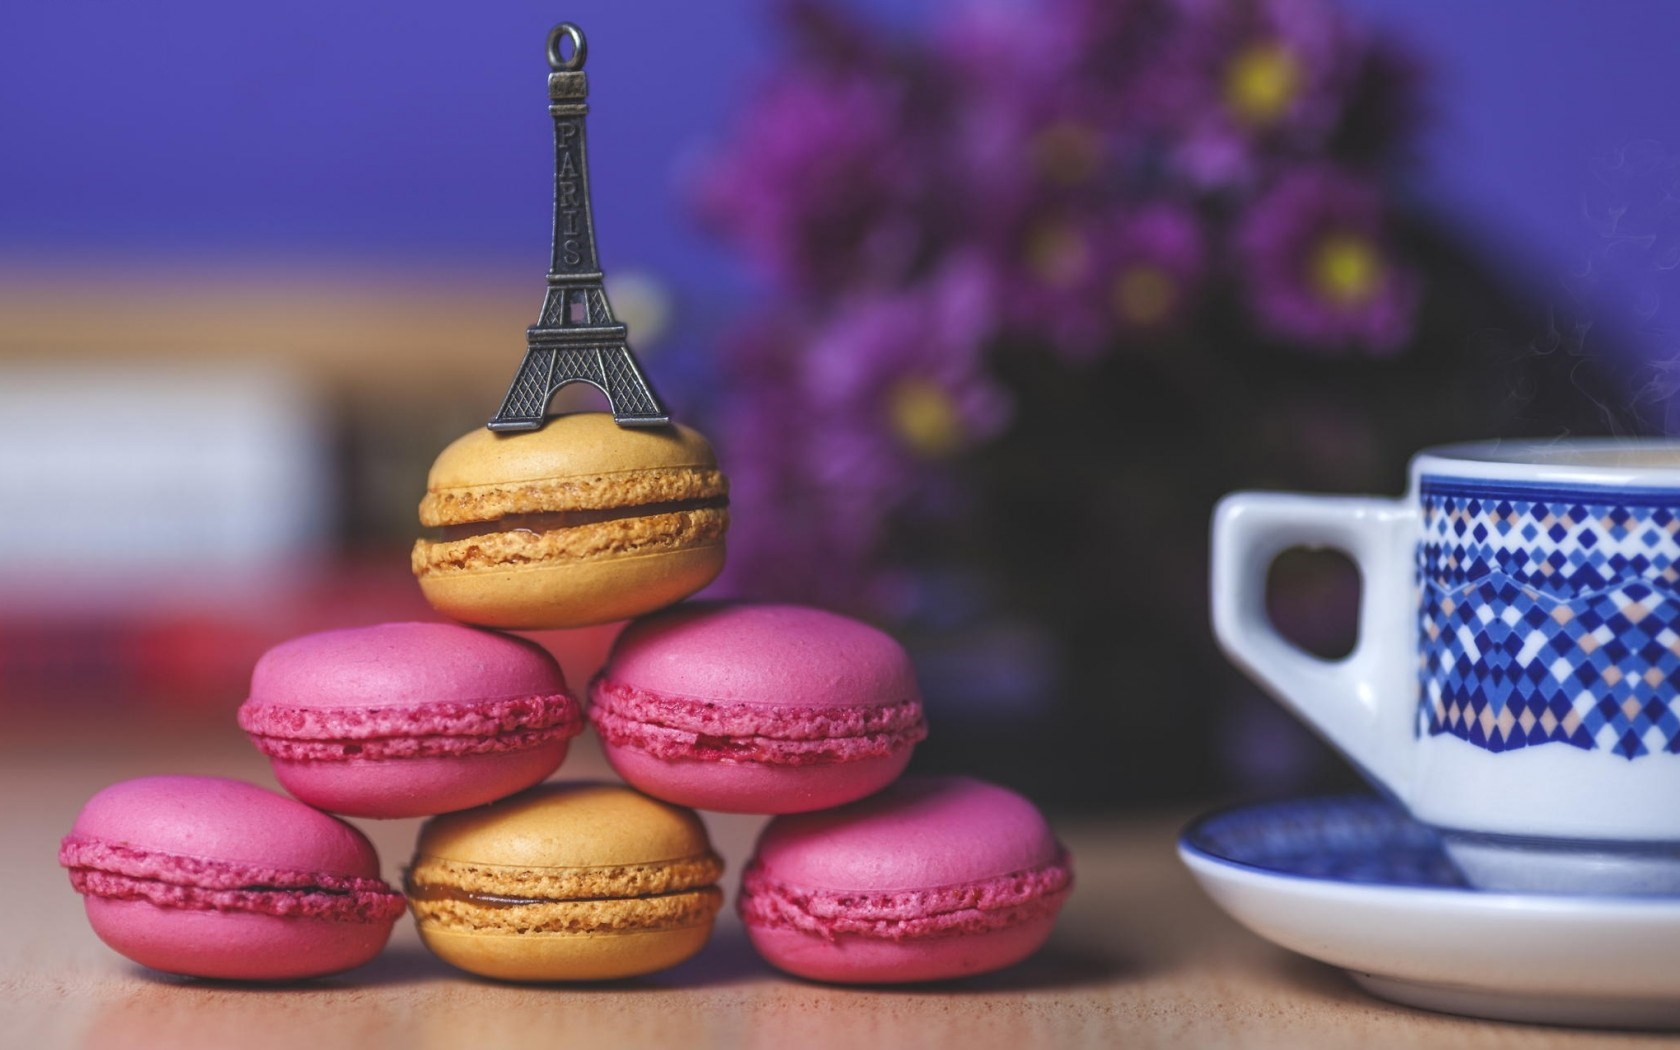 Sweet Cute Wallpapers For Laptop 13 Fantastic Hd Macaron Wallpapers